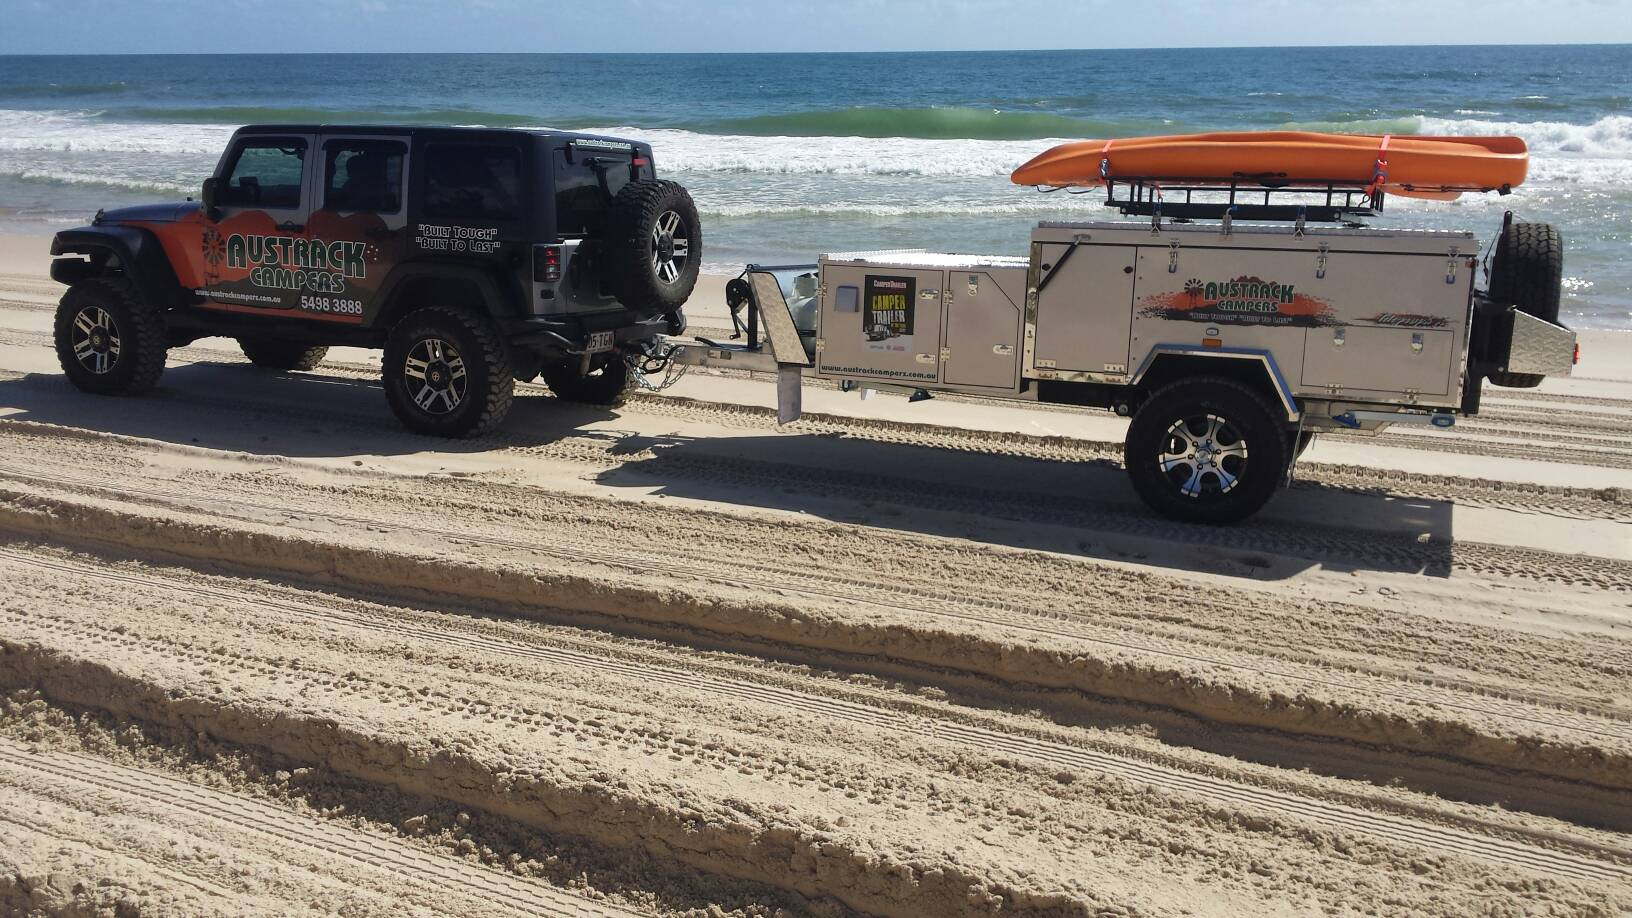 Austrack Campers Camper Trailer of the Year 2017 entry